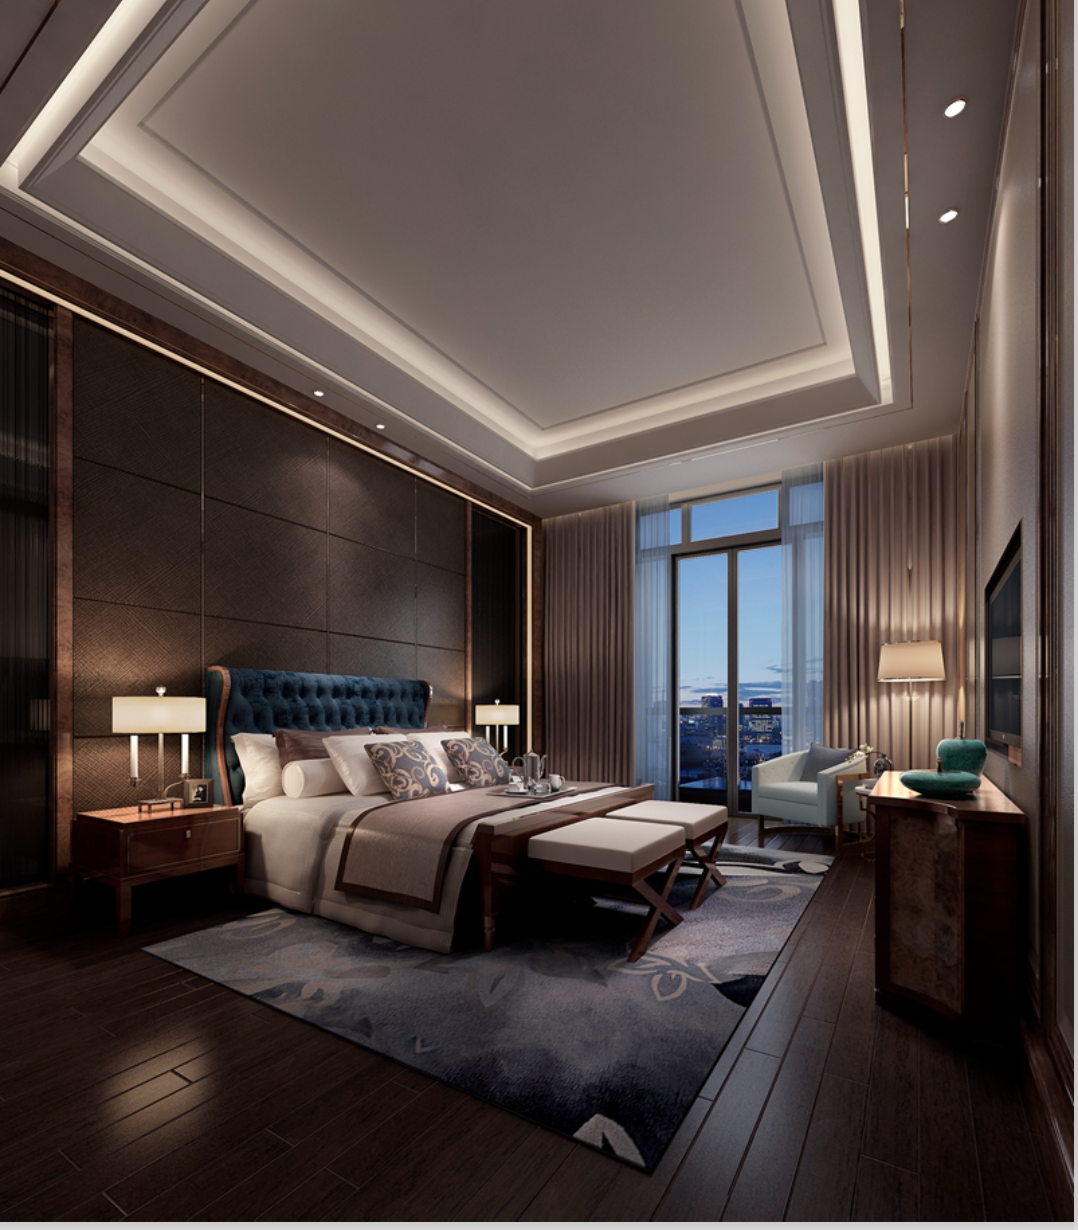 Luxury Ceiling Design Romantic Bedroom Ultra Luxurious Bedroom Ideas